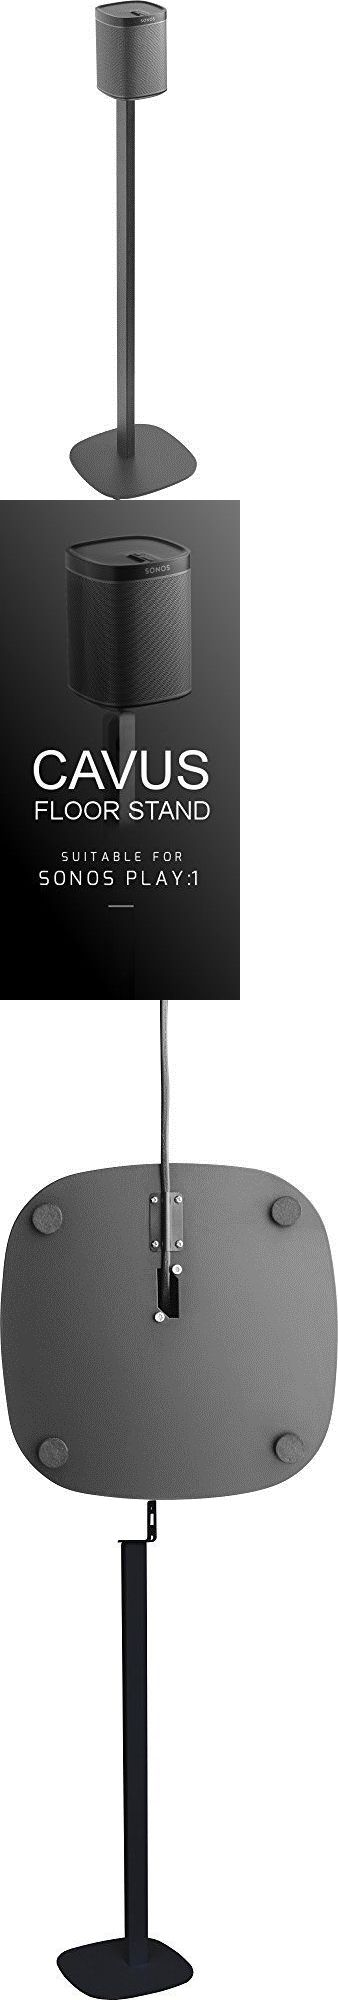 Speaker Mounts and Stands: Cavus Sns1b Floor Stand Suitable For Sonos Play 1 Black Electronics Features -> BUY IT NOW ONLY: $165 on eBay!